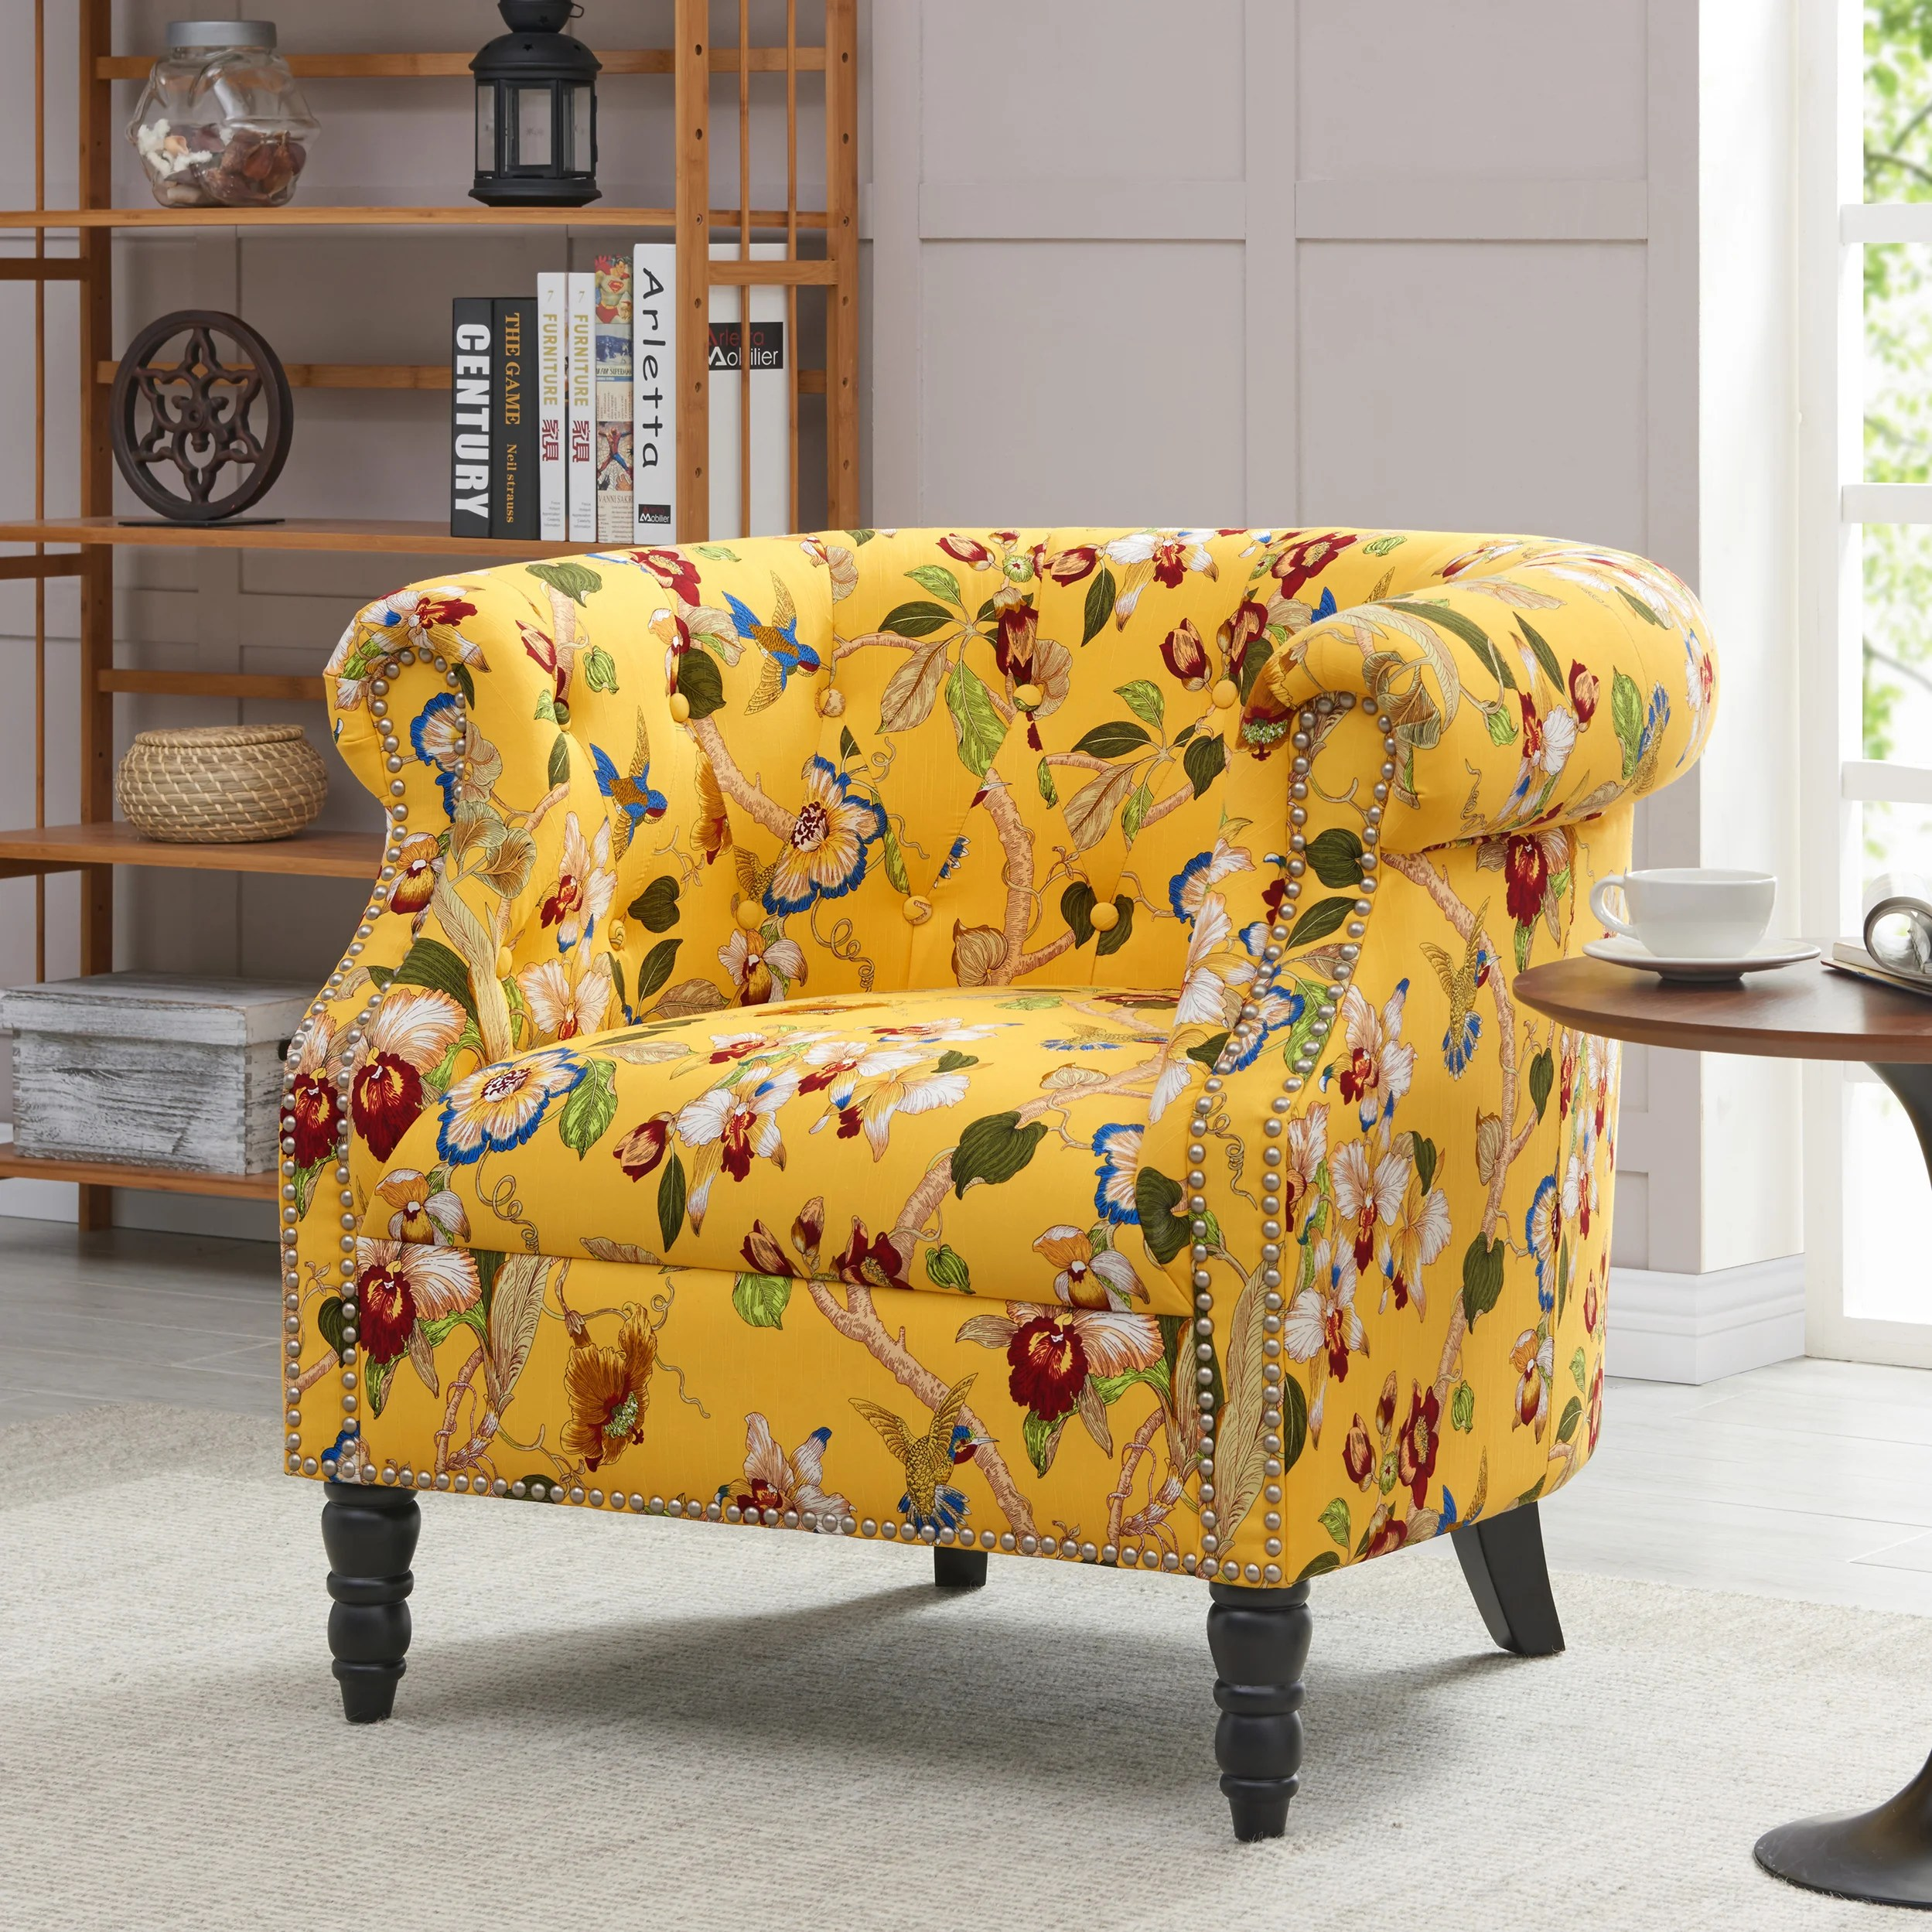 Yellow Living Room Chair Buy Accent Chairs Yellow Living Room Chairs Online At Overstock